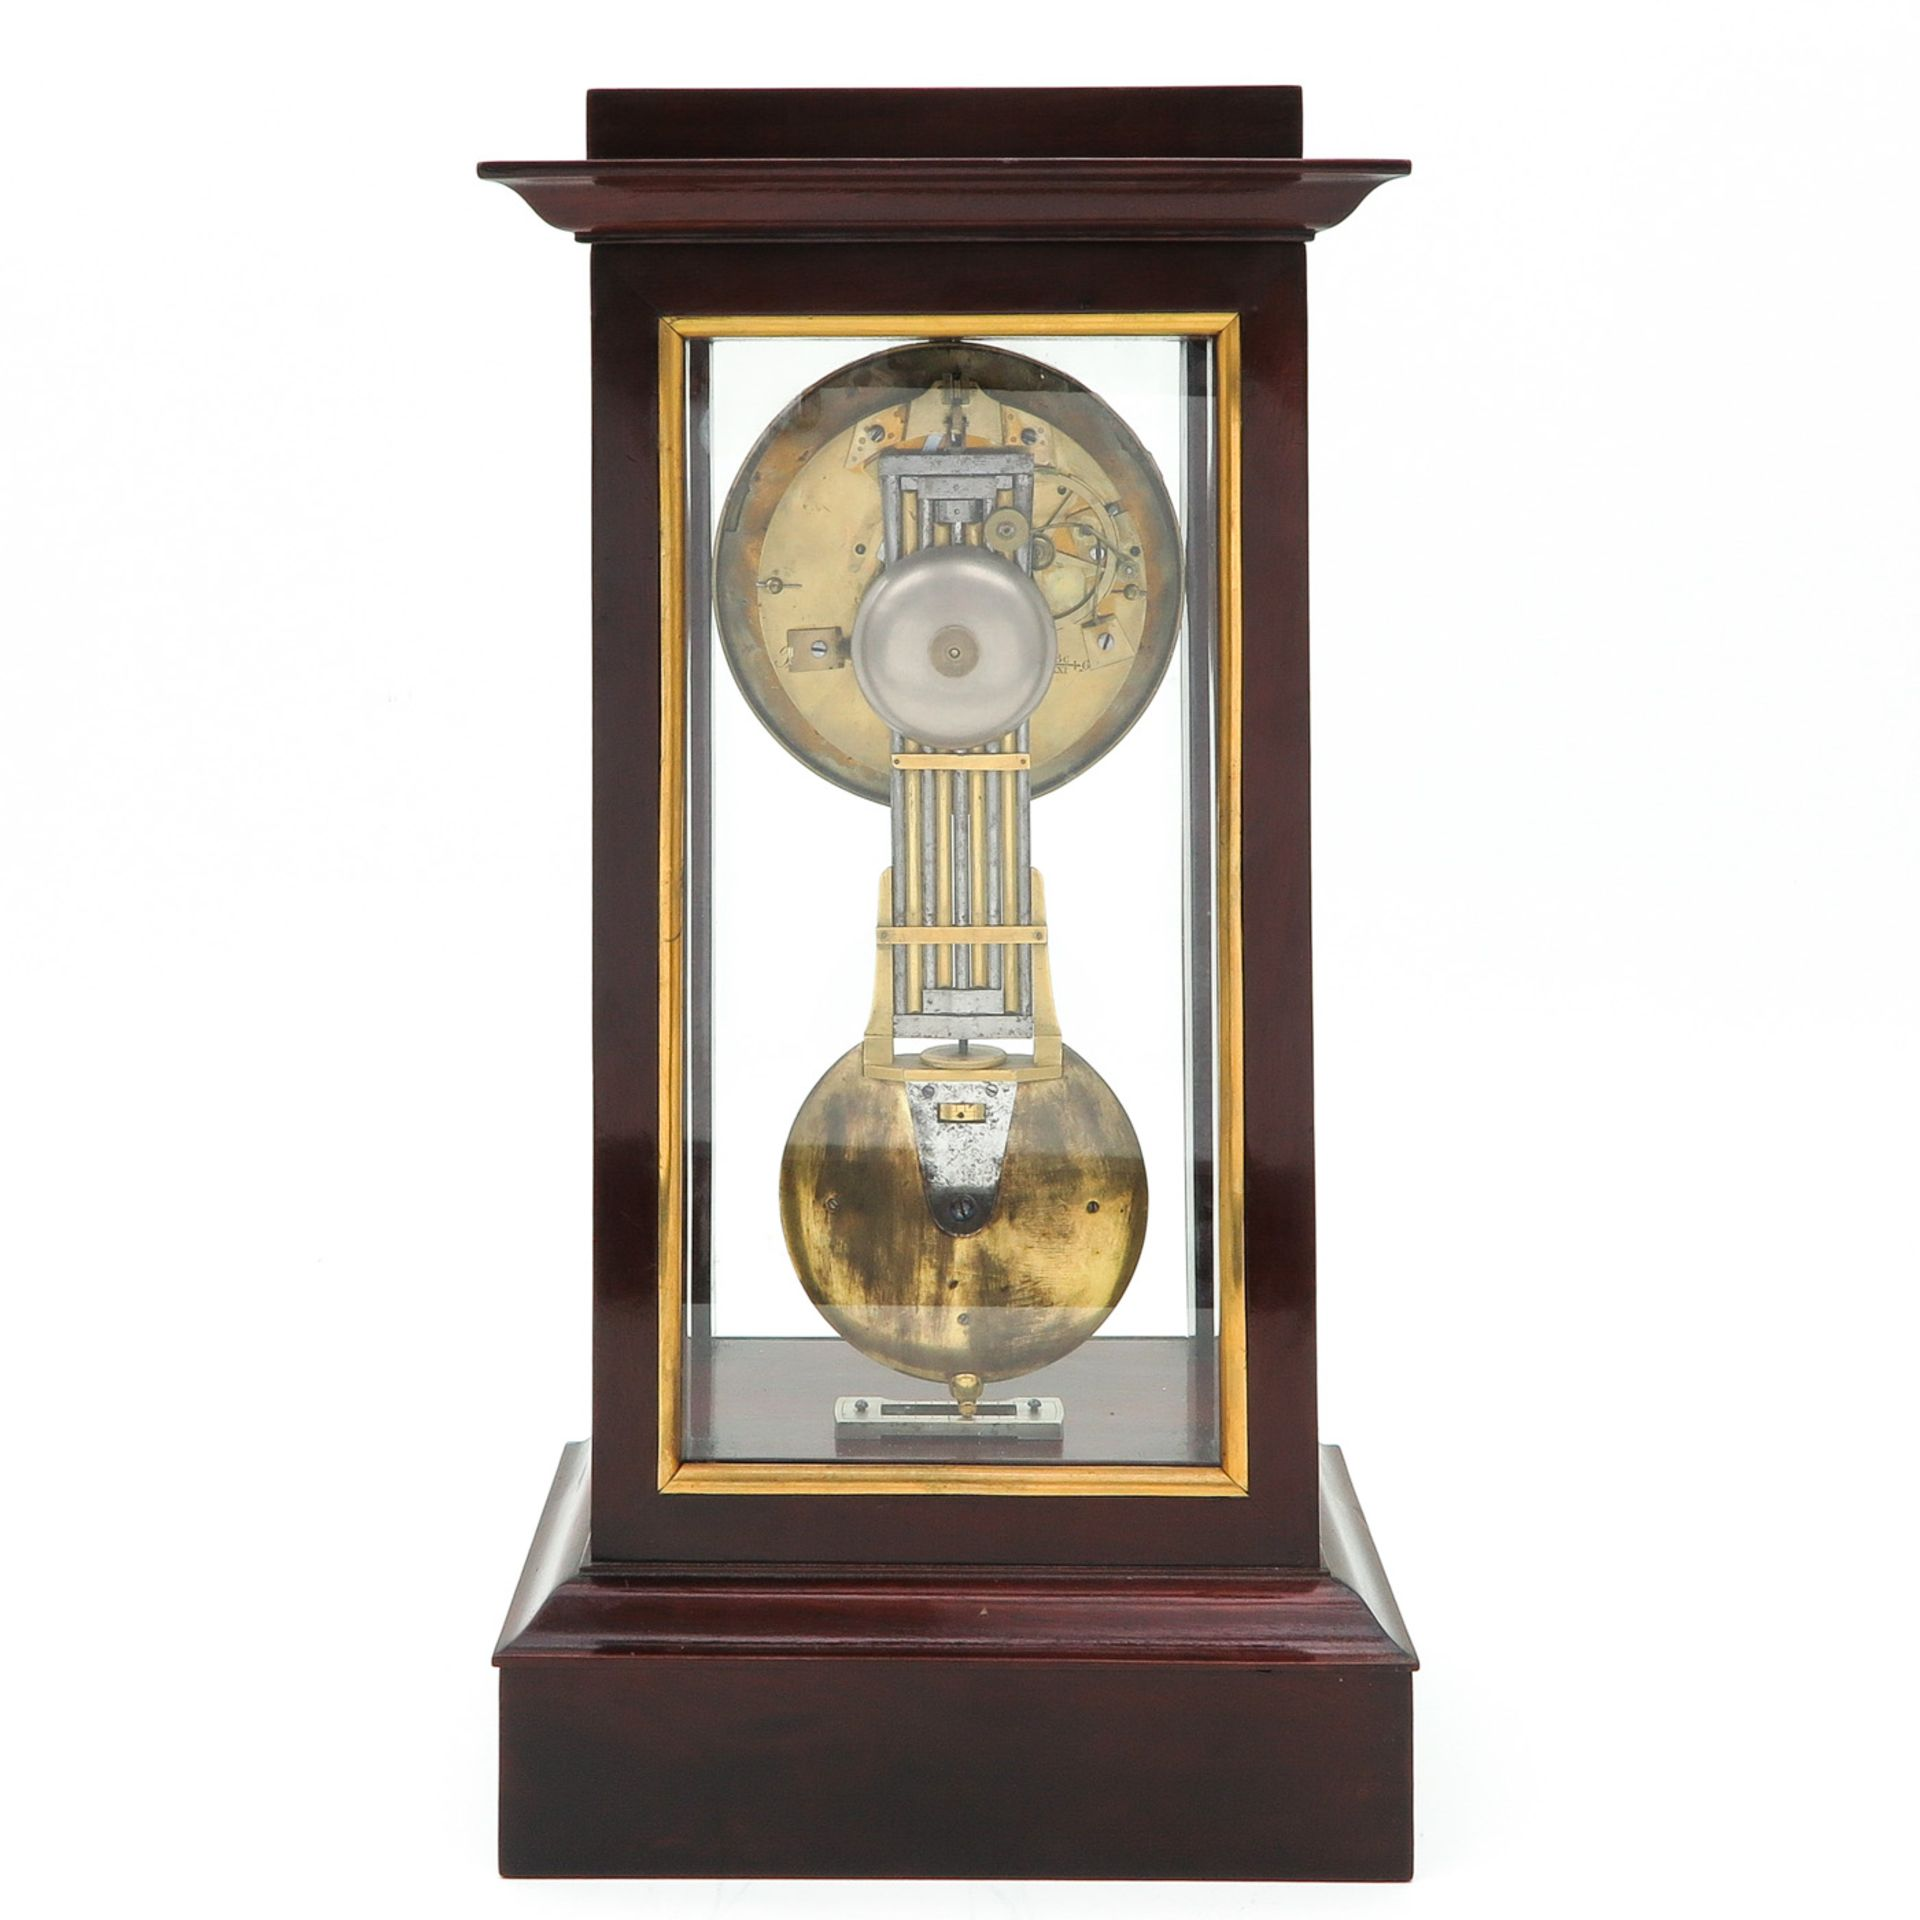 Los 1195 - A Signed French Table Clock Circa 1800